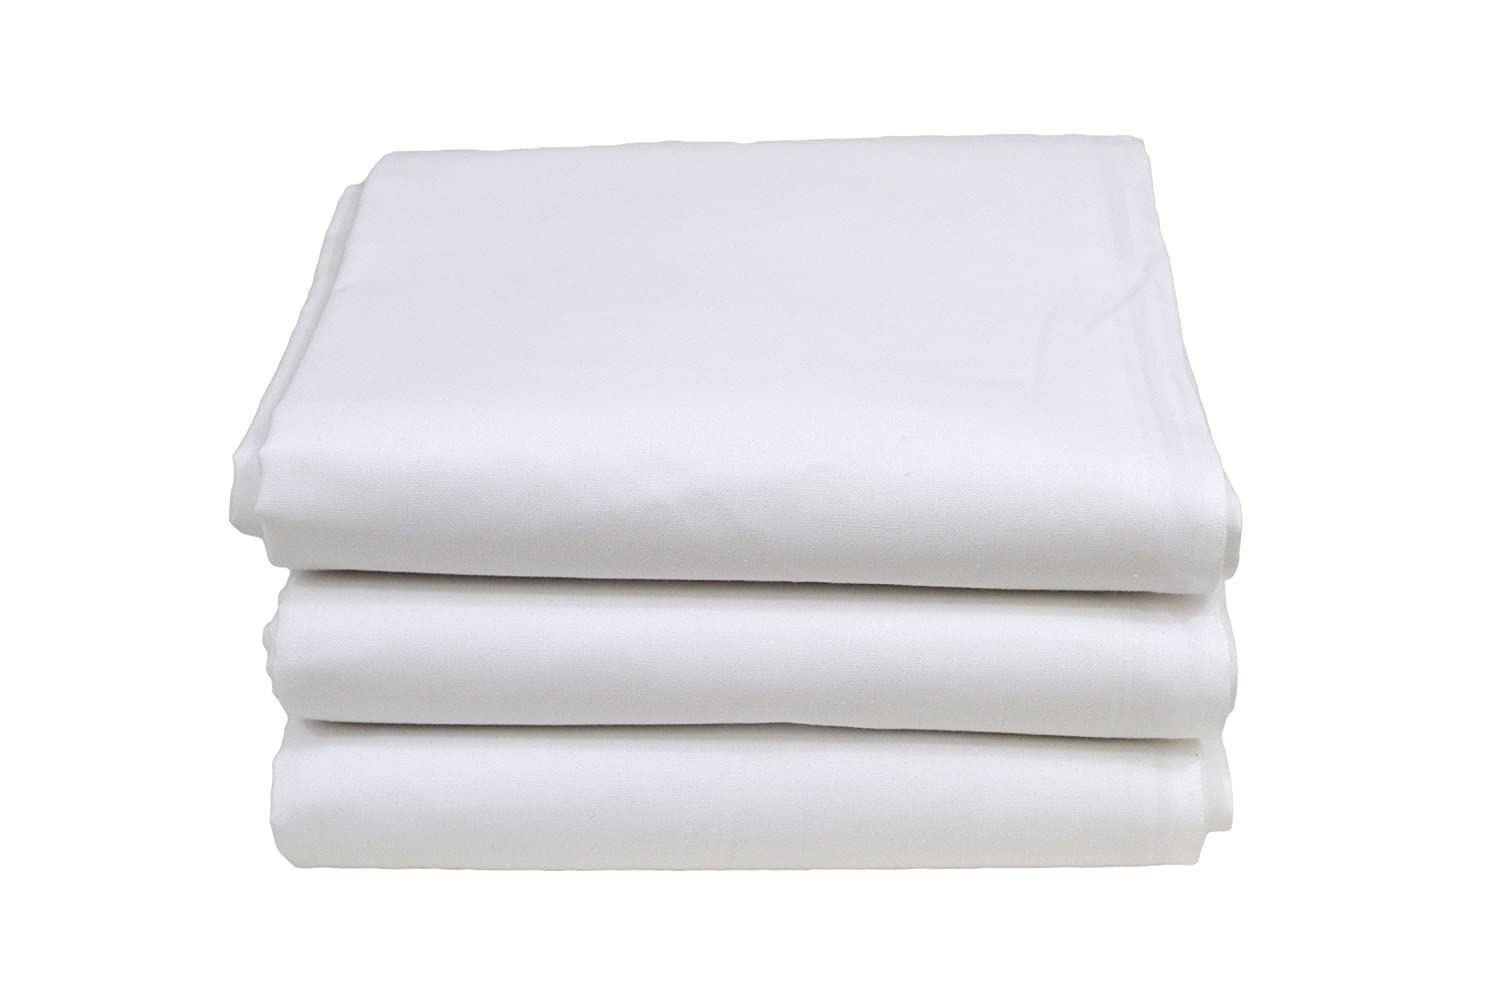 Image of Hotel Basics X32010 T200 Twin Sheet, 66' x 116', White (Pack of 12) Bed Linens